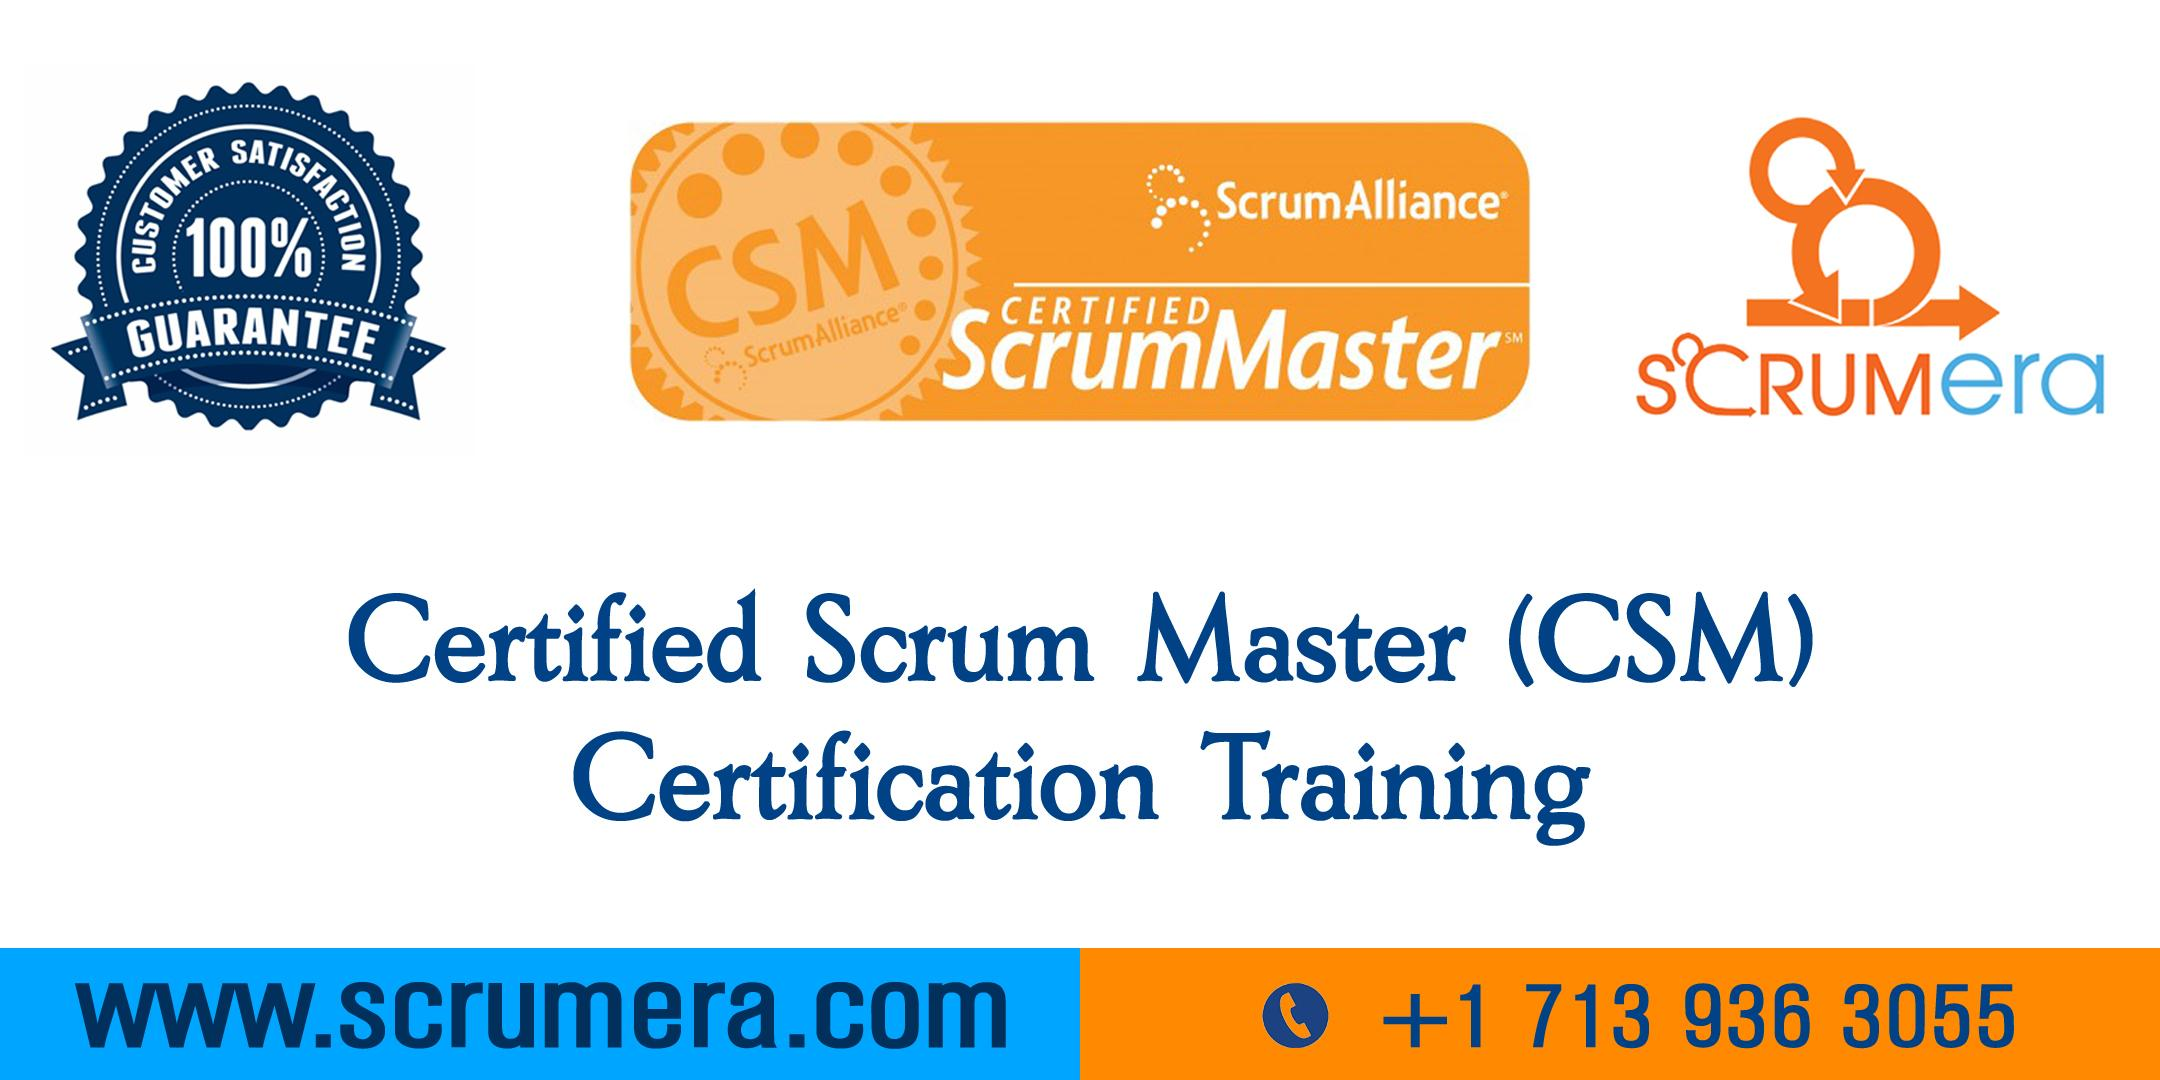 Scrum Master Certification | CSM Training | CSM Certification Workshop | Certified Scrum Master (CSM) Training in Portland, OR | ScrumERA